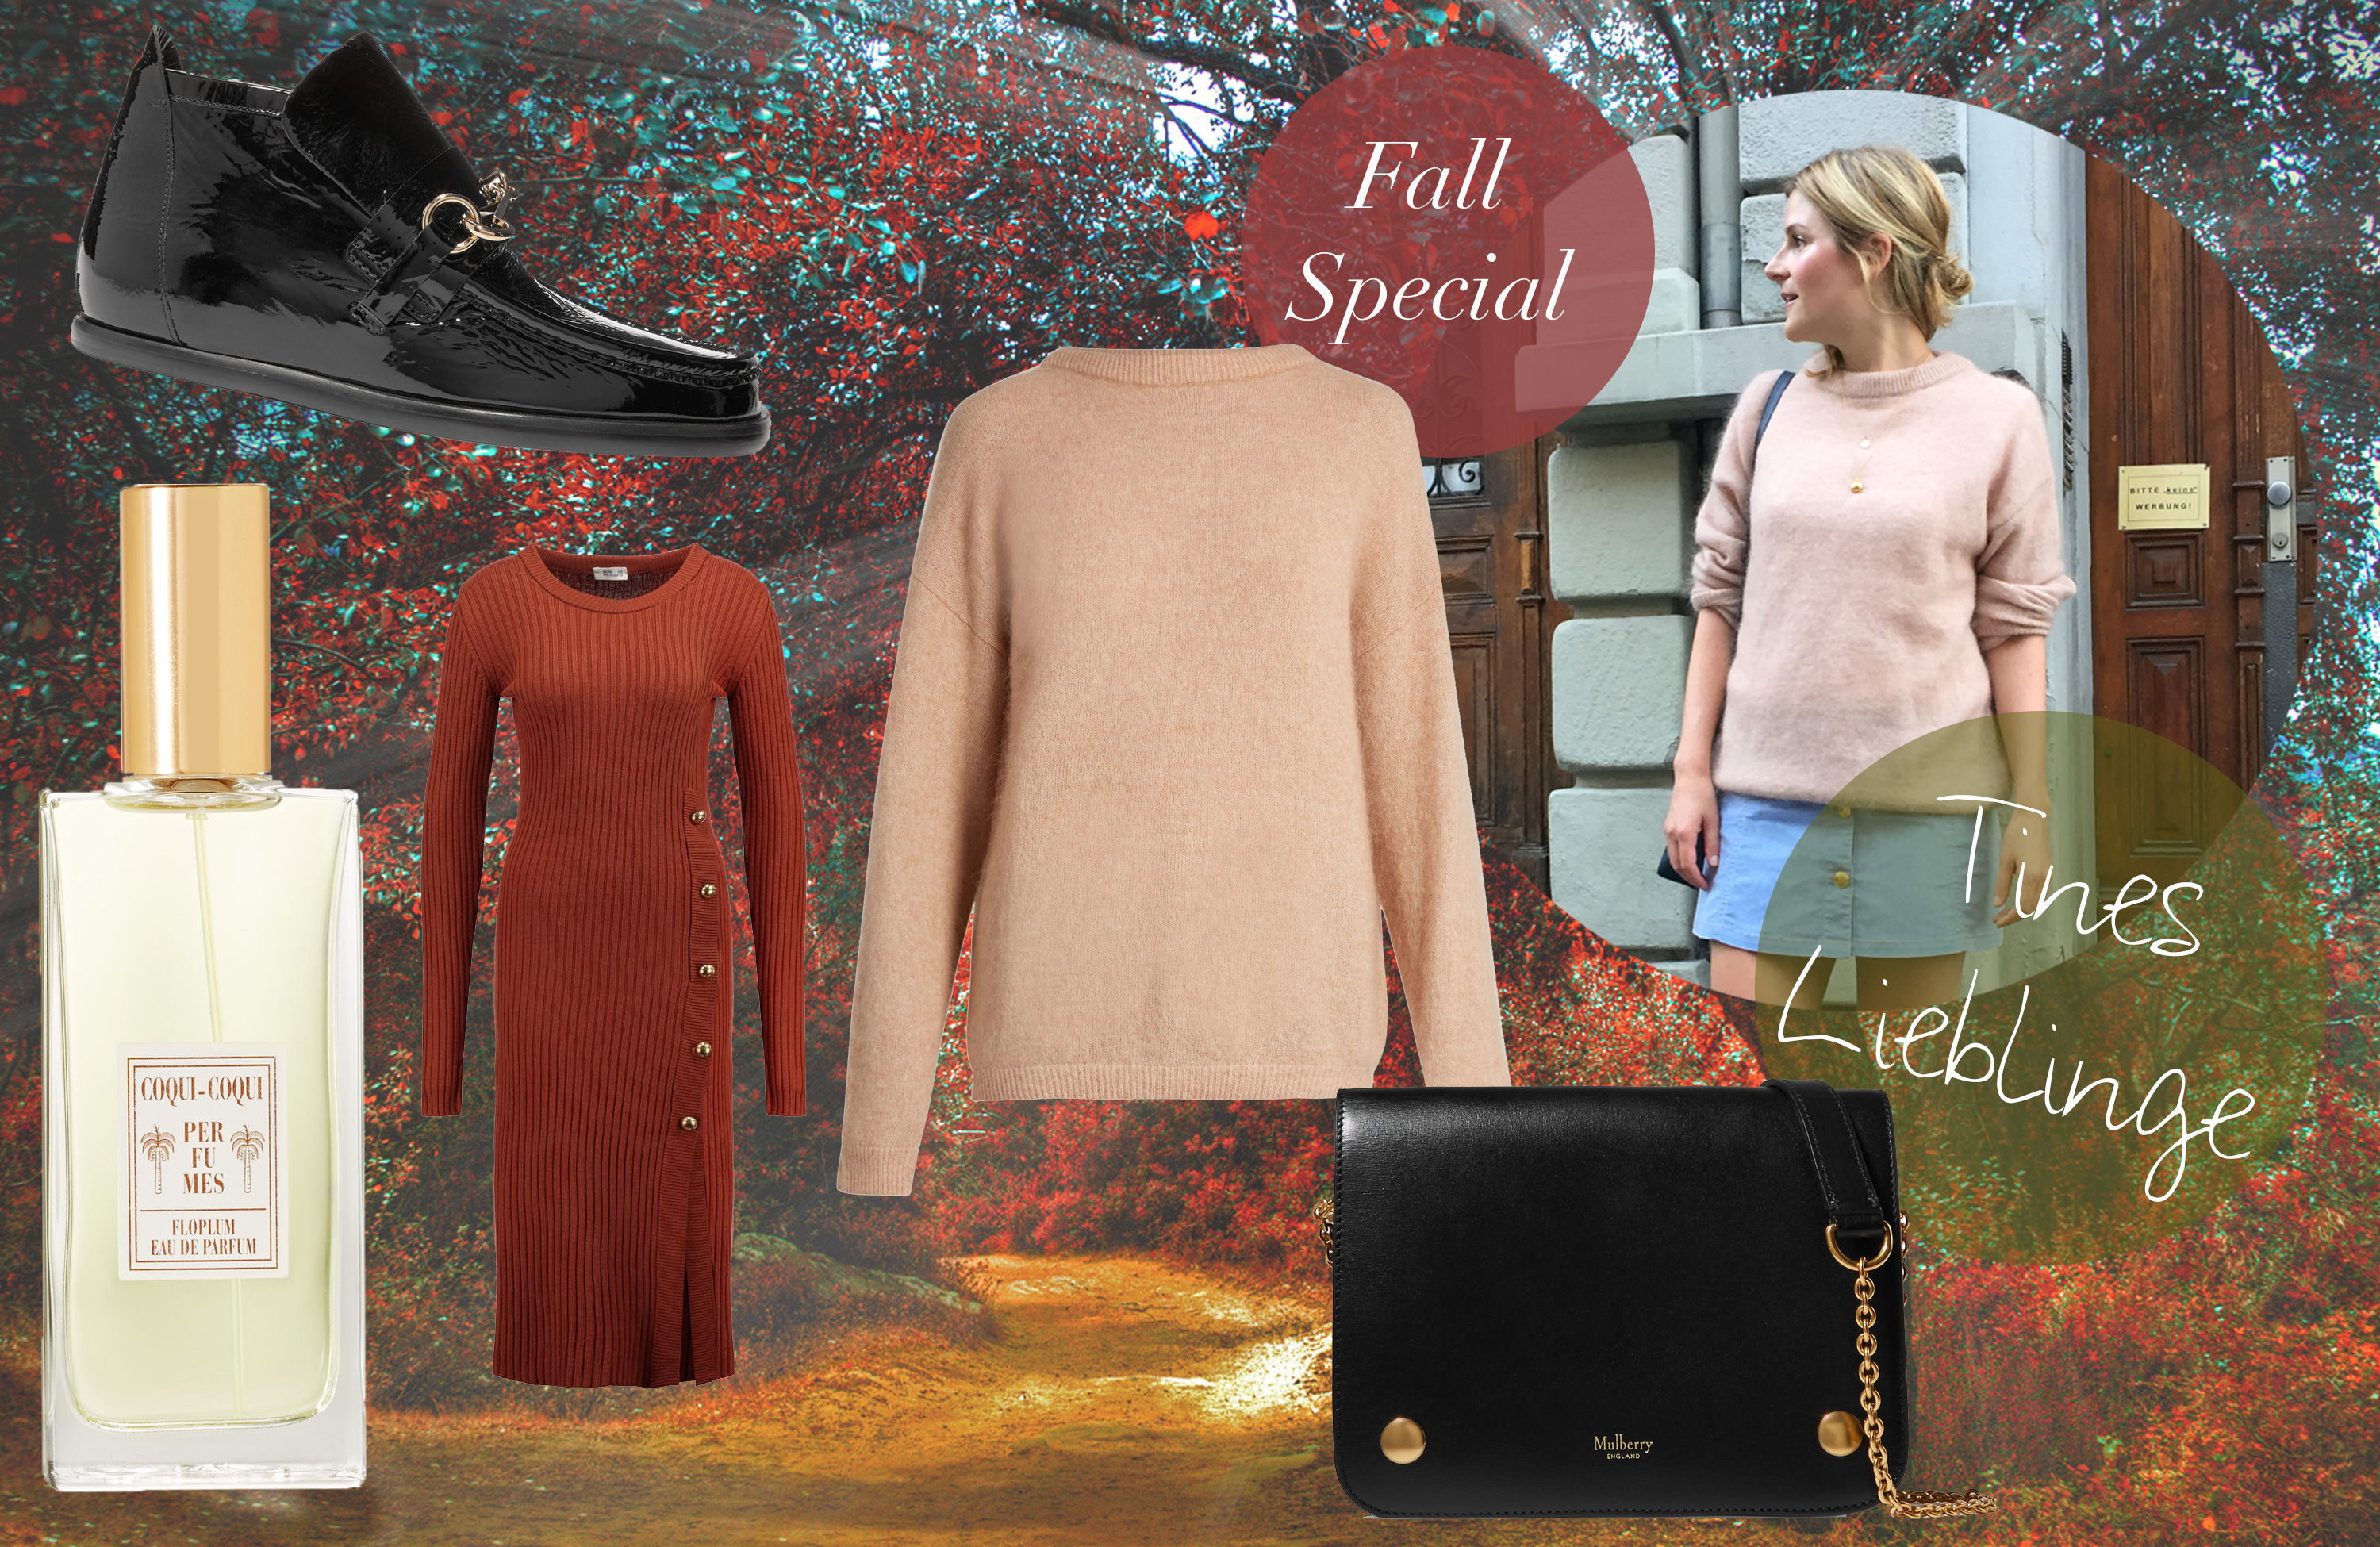 journelles-fall-special-2016-herbstlieblinge-tine